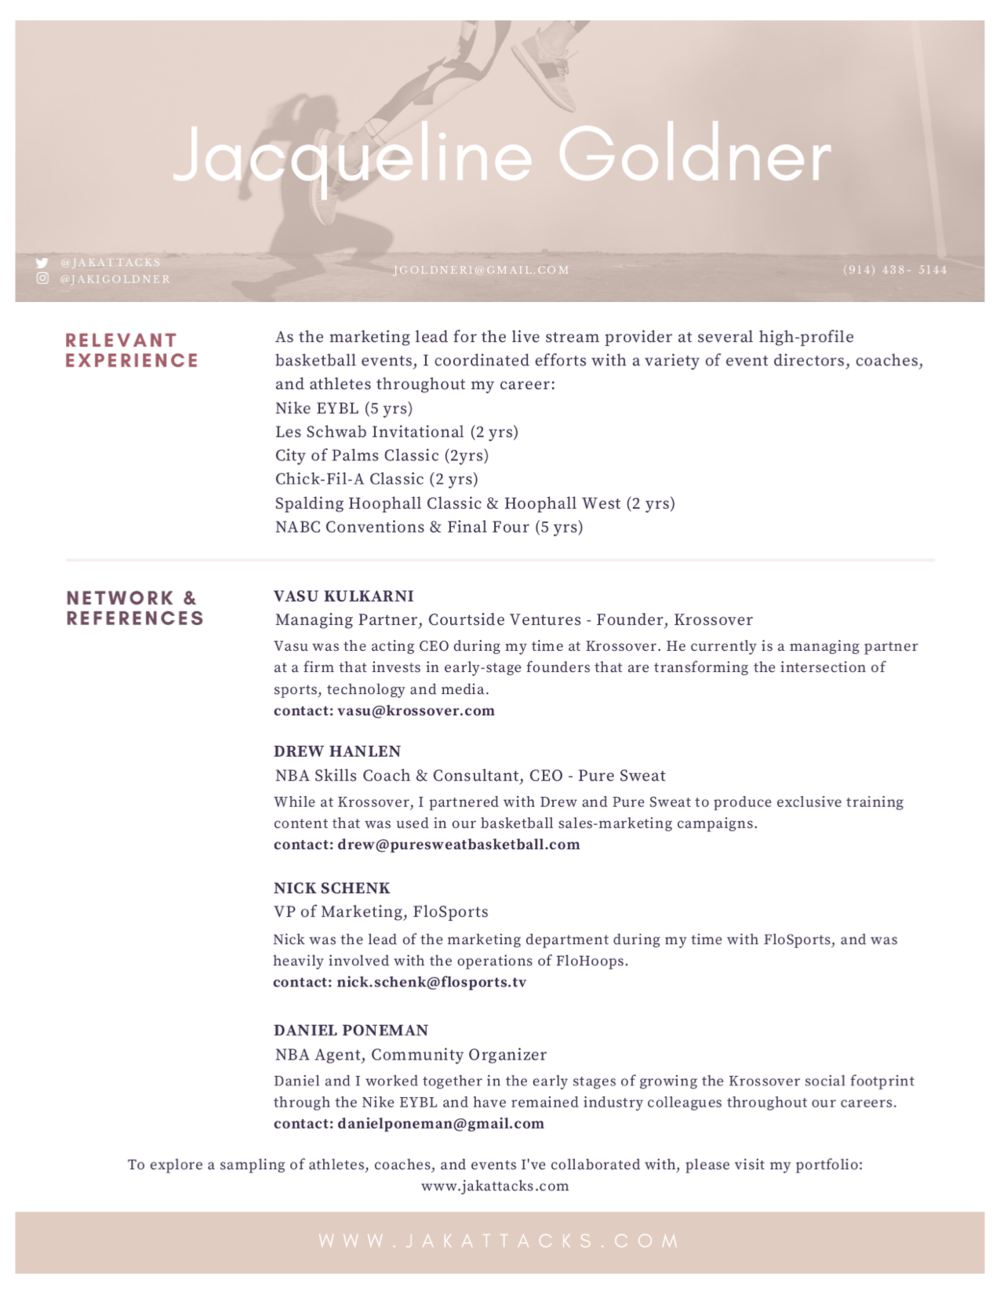 Jacqueline Goldner-ADIDAS-Res22.png